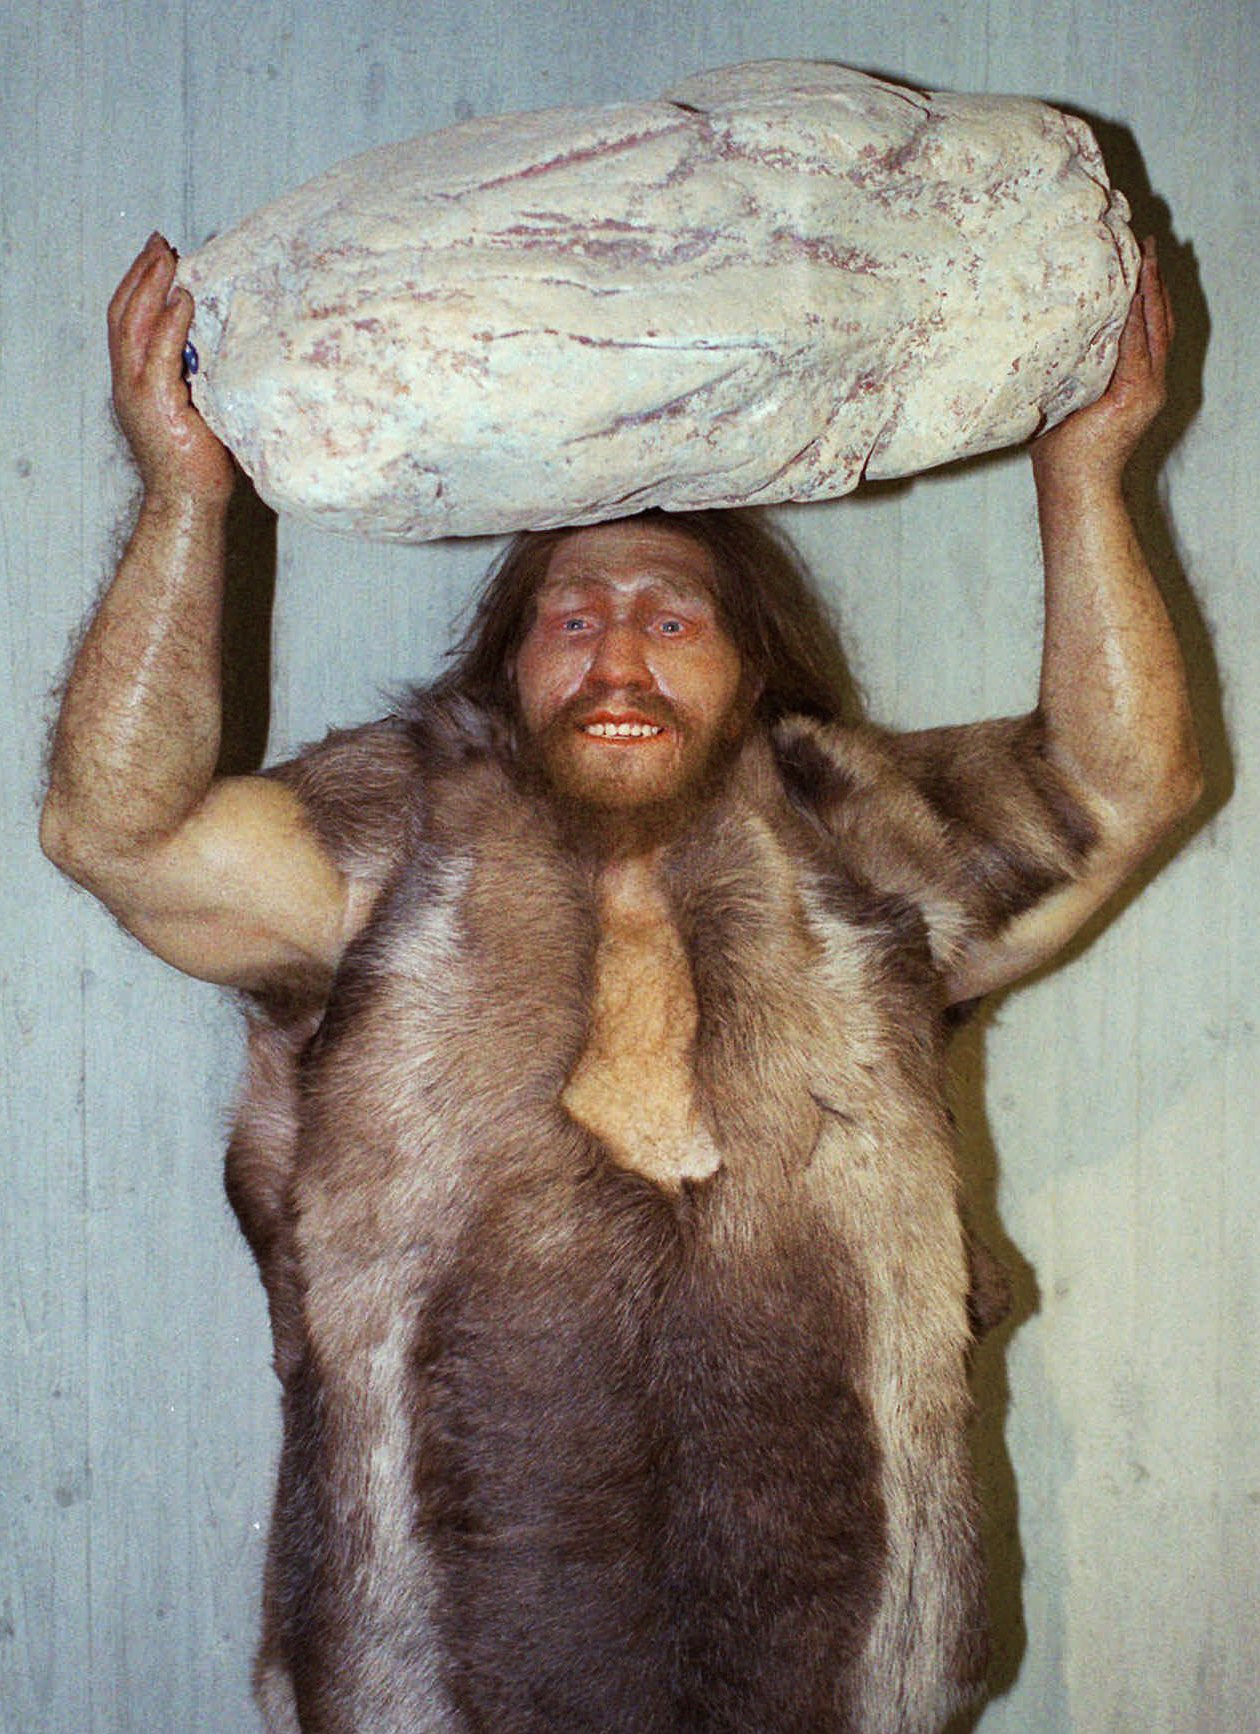 In this file photo, a replica of a Neanderthal man is displayed at the Neanderthal museum in Mettmann, western Germany.